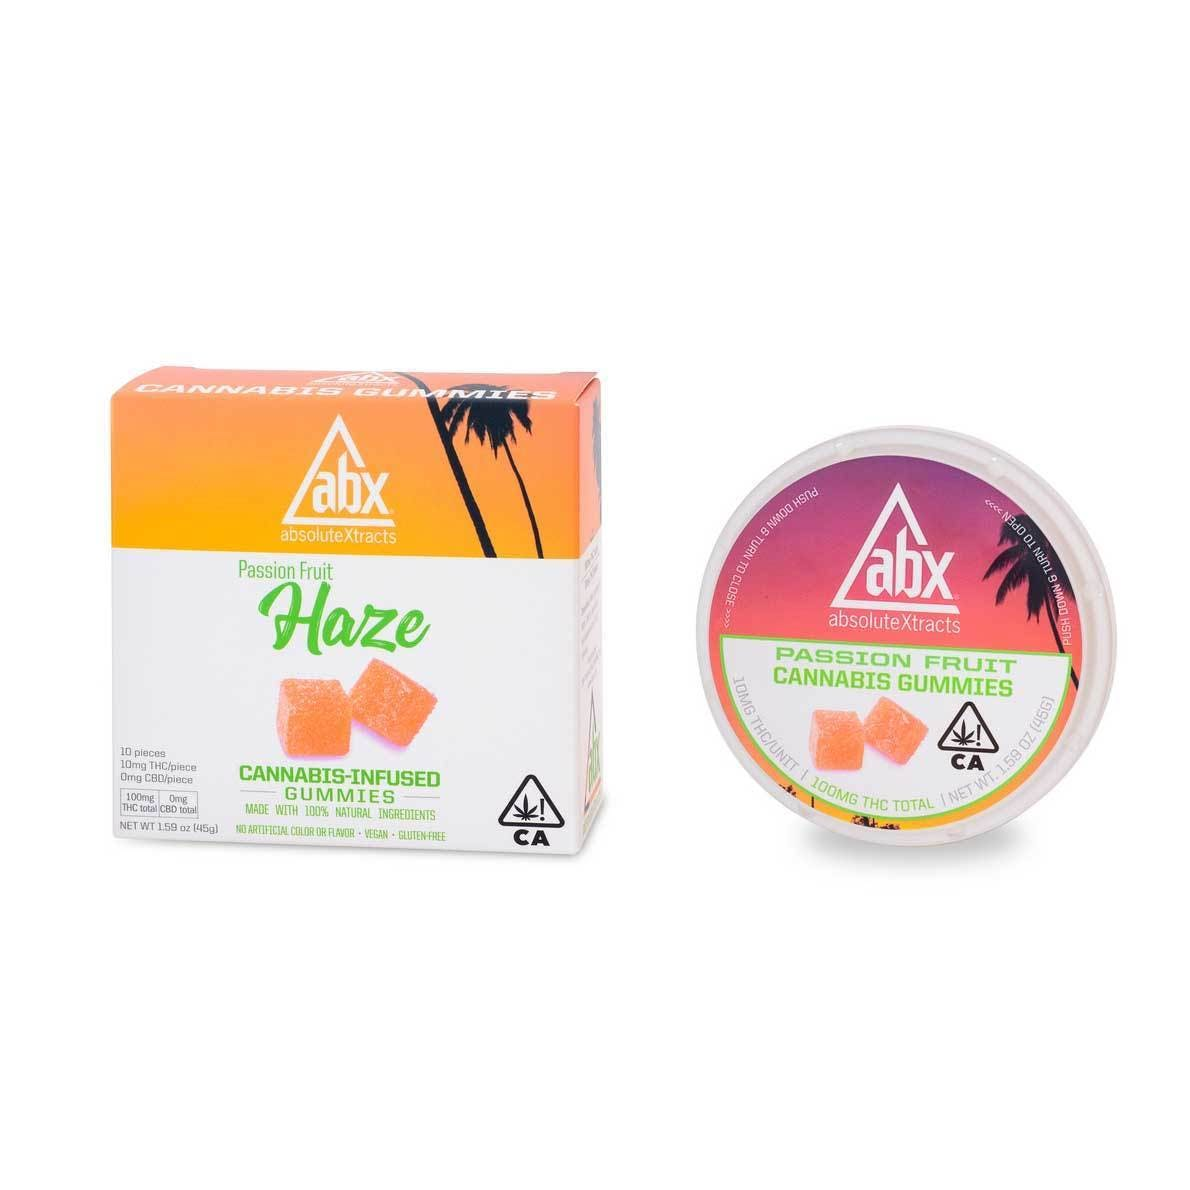 edible-absolute-extracts-passionfruit-haze-gummies-100mg